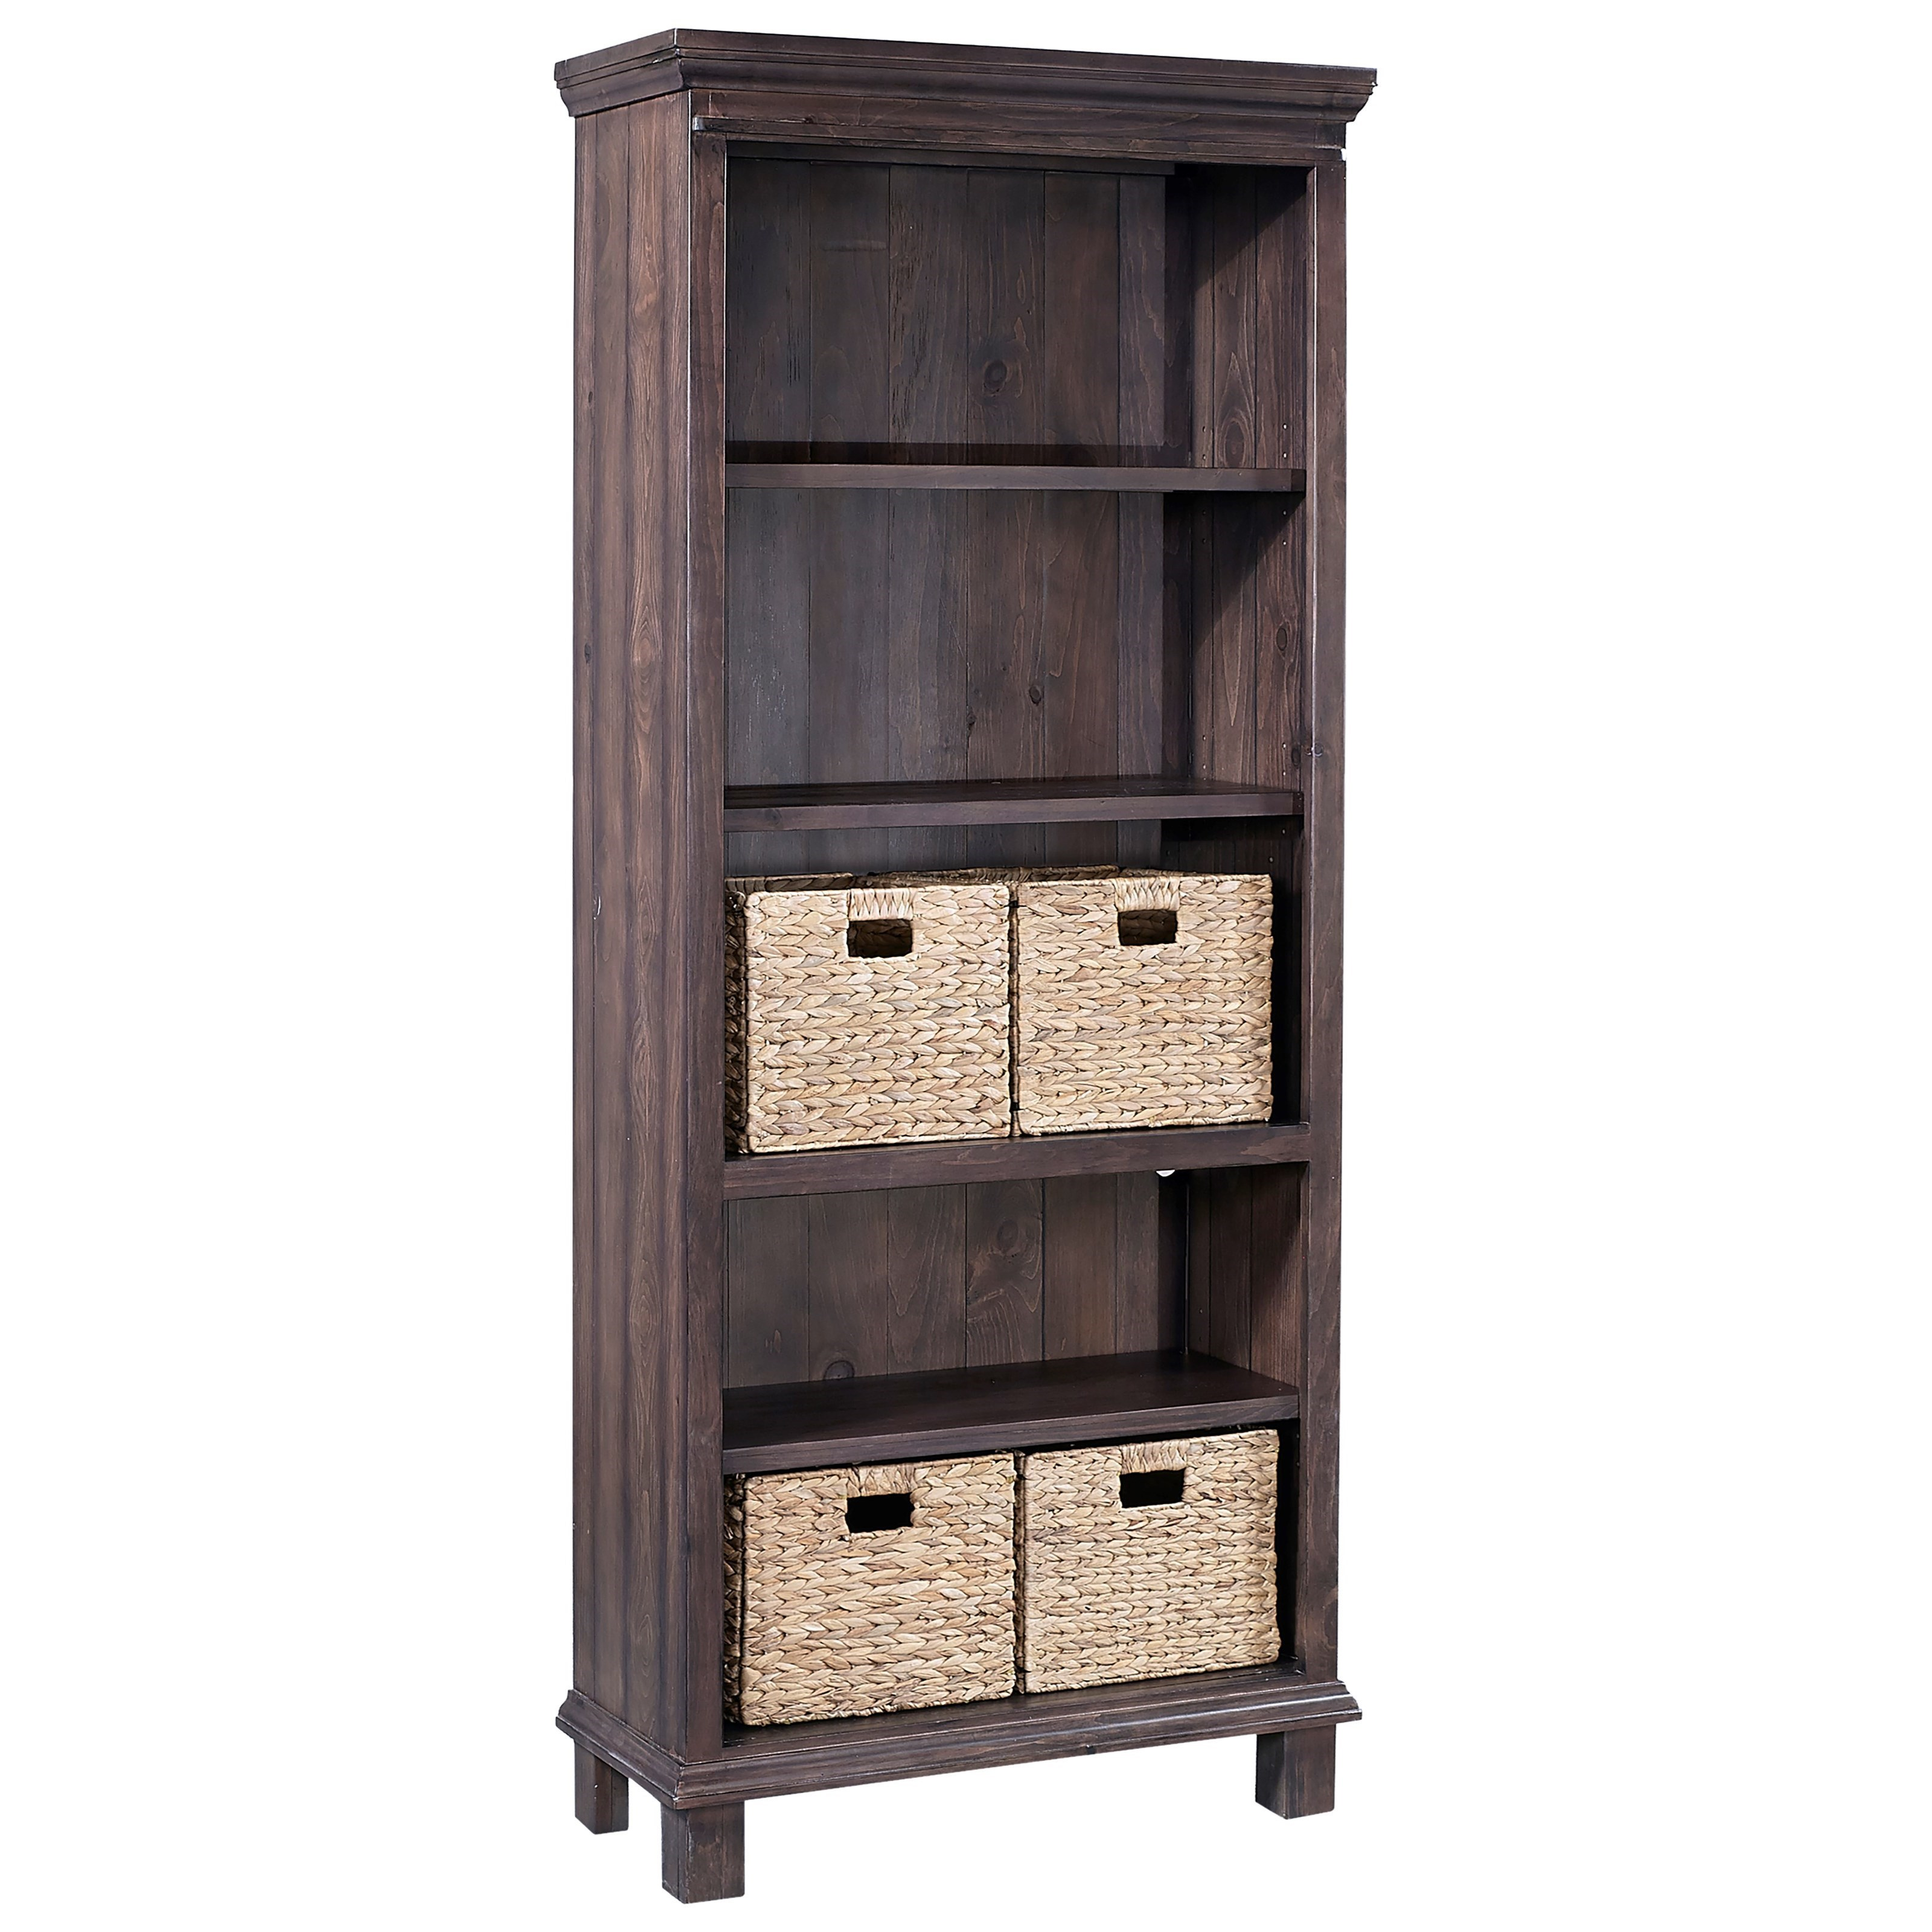 Bookcase with Baskets